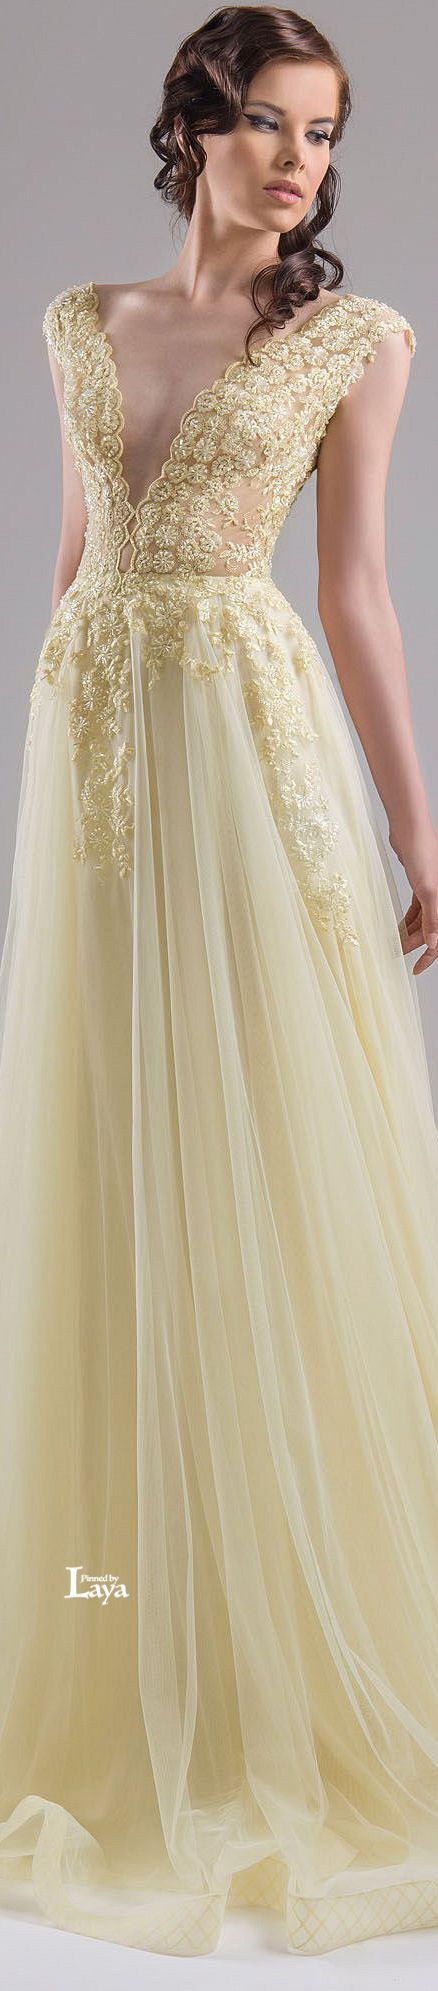 Layachrystelle atallah ss couture letus dress up